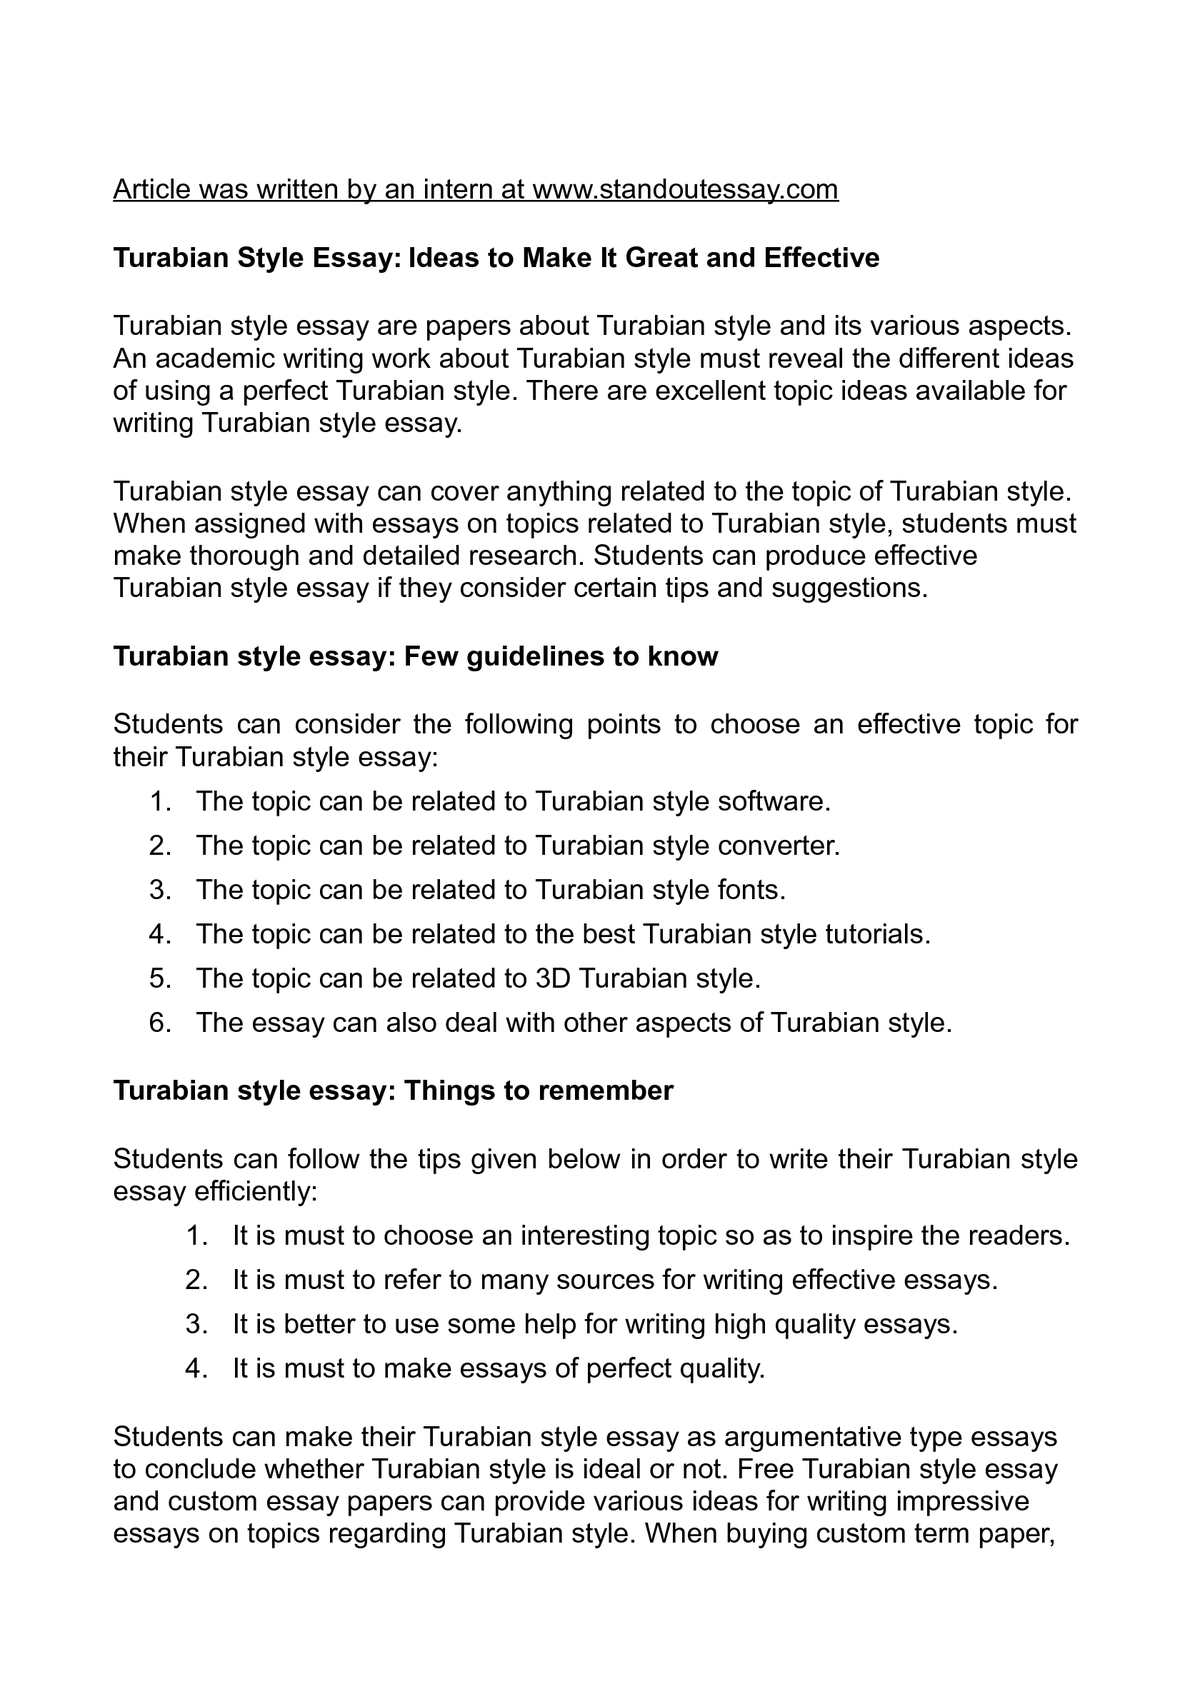 turabian style paper Turabian cheat sheet by professor john  i have opted to use the turabian style guide in all my  turabian cheat sheet by professor john kreiss.